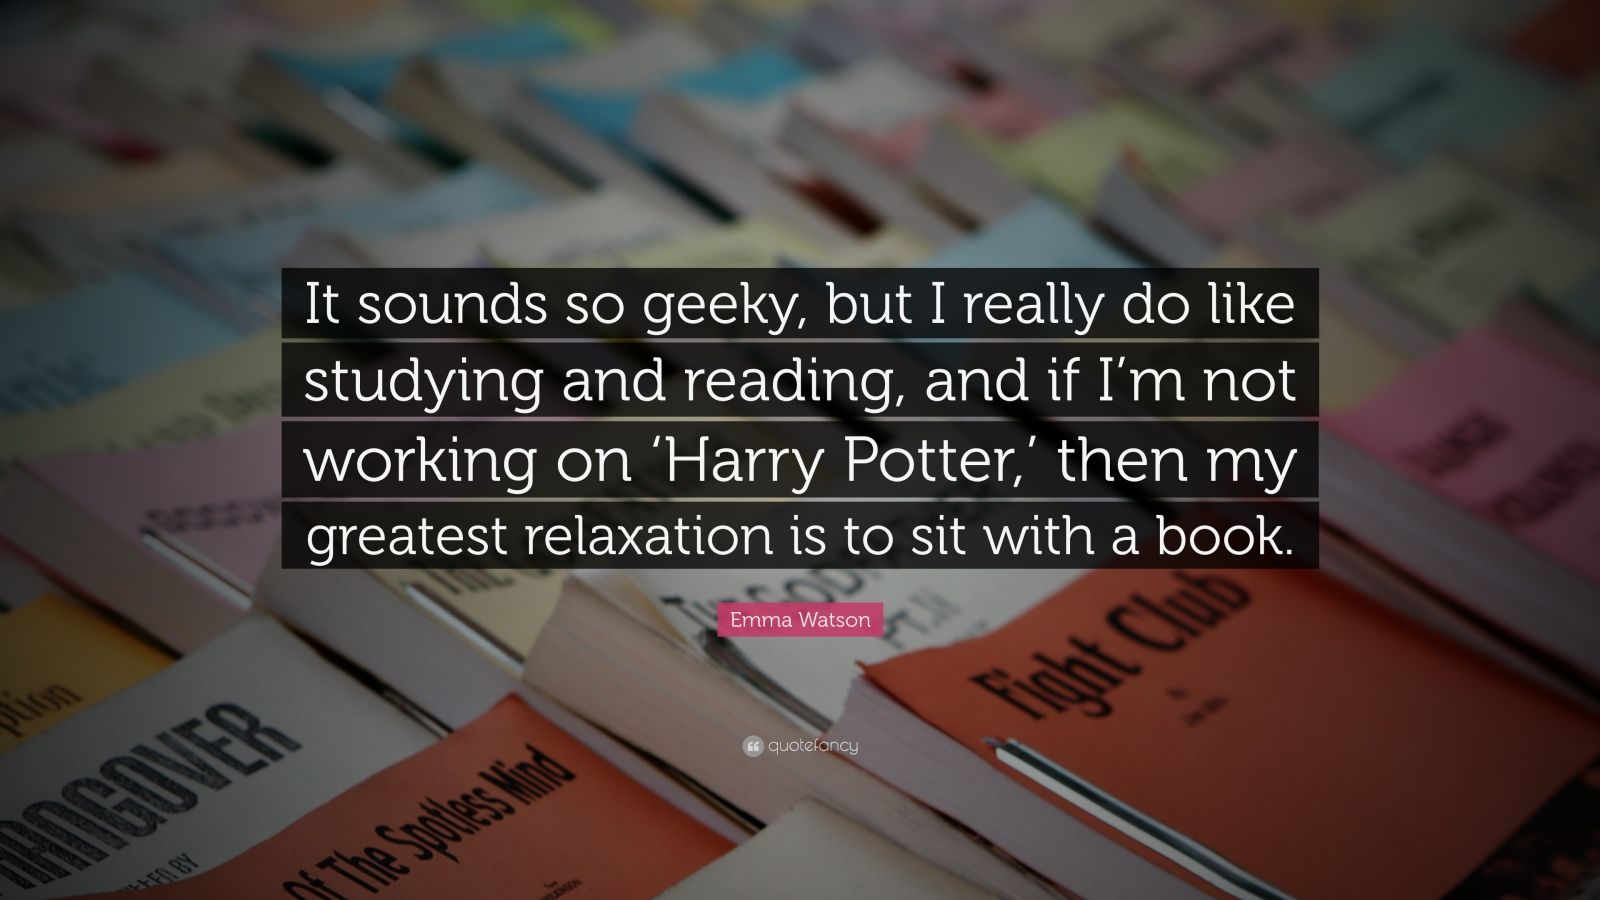 """Emma Watson Quote: """"It sounds so geeky, but I really do like studying and reading, and if I'm not working on 'Harry Potter,' then my greatest relaxation is to sit with a book."""""""